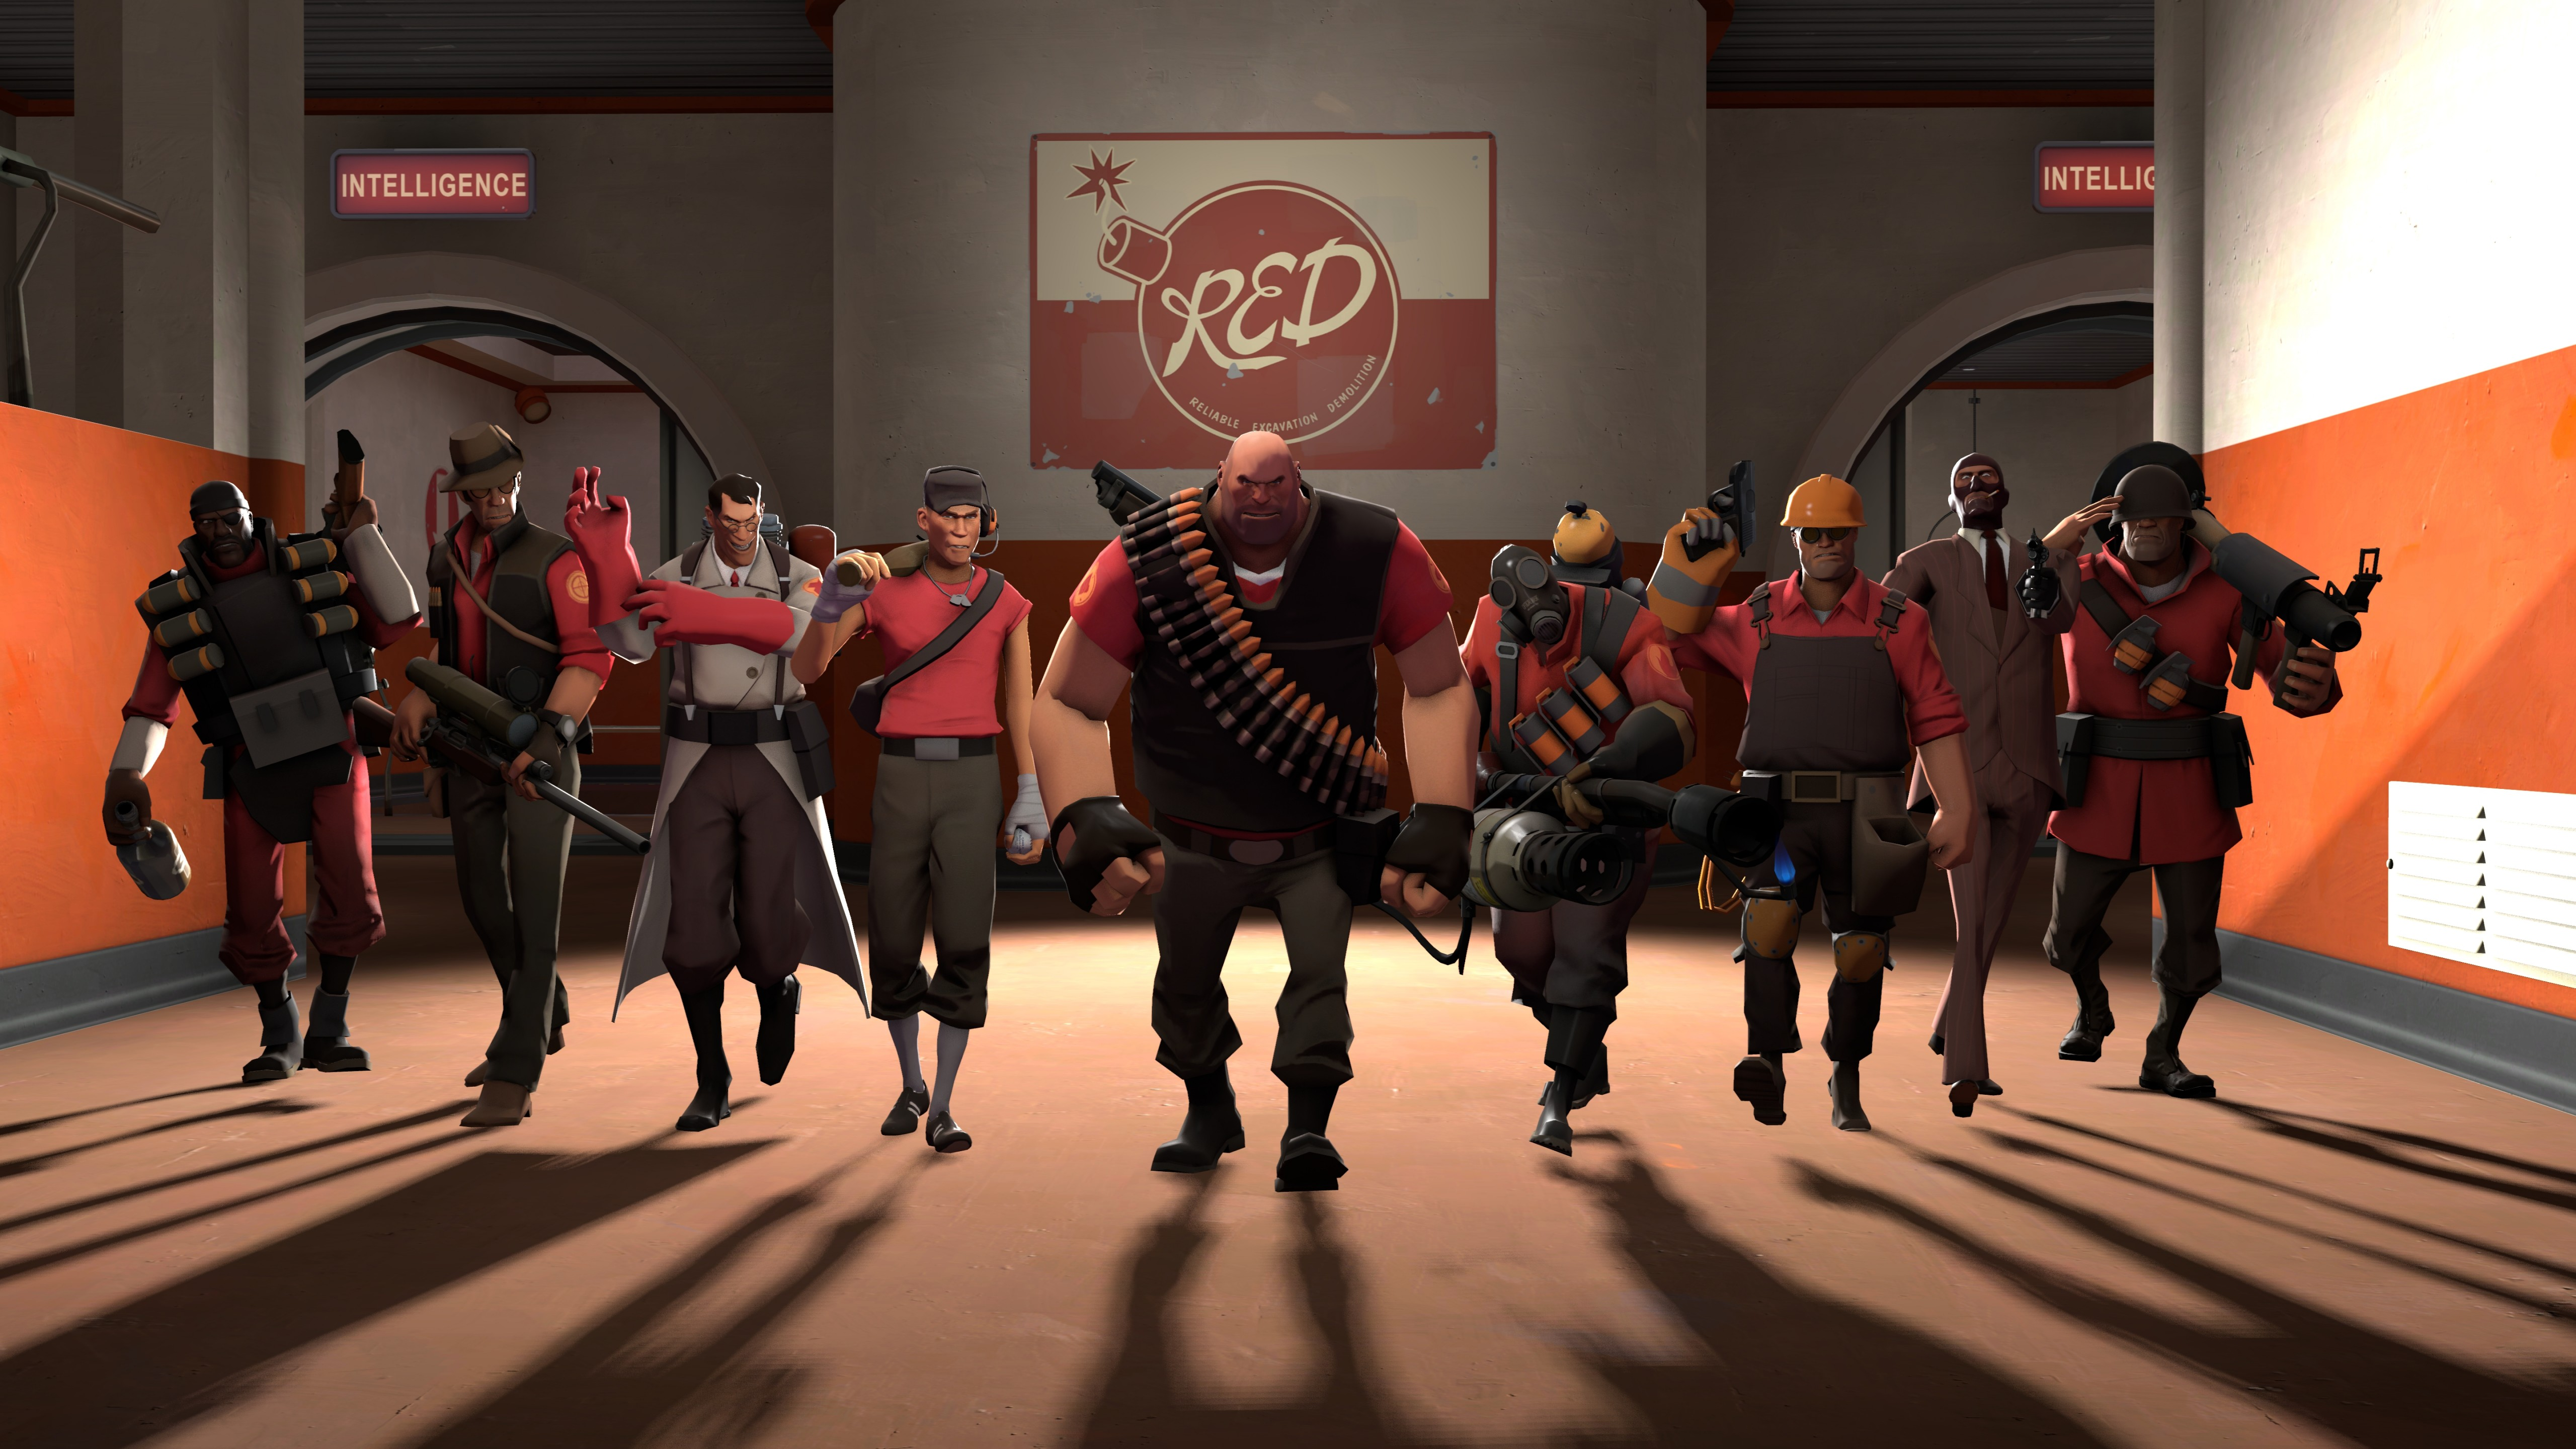 Team Fortress 2 Wallpapers